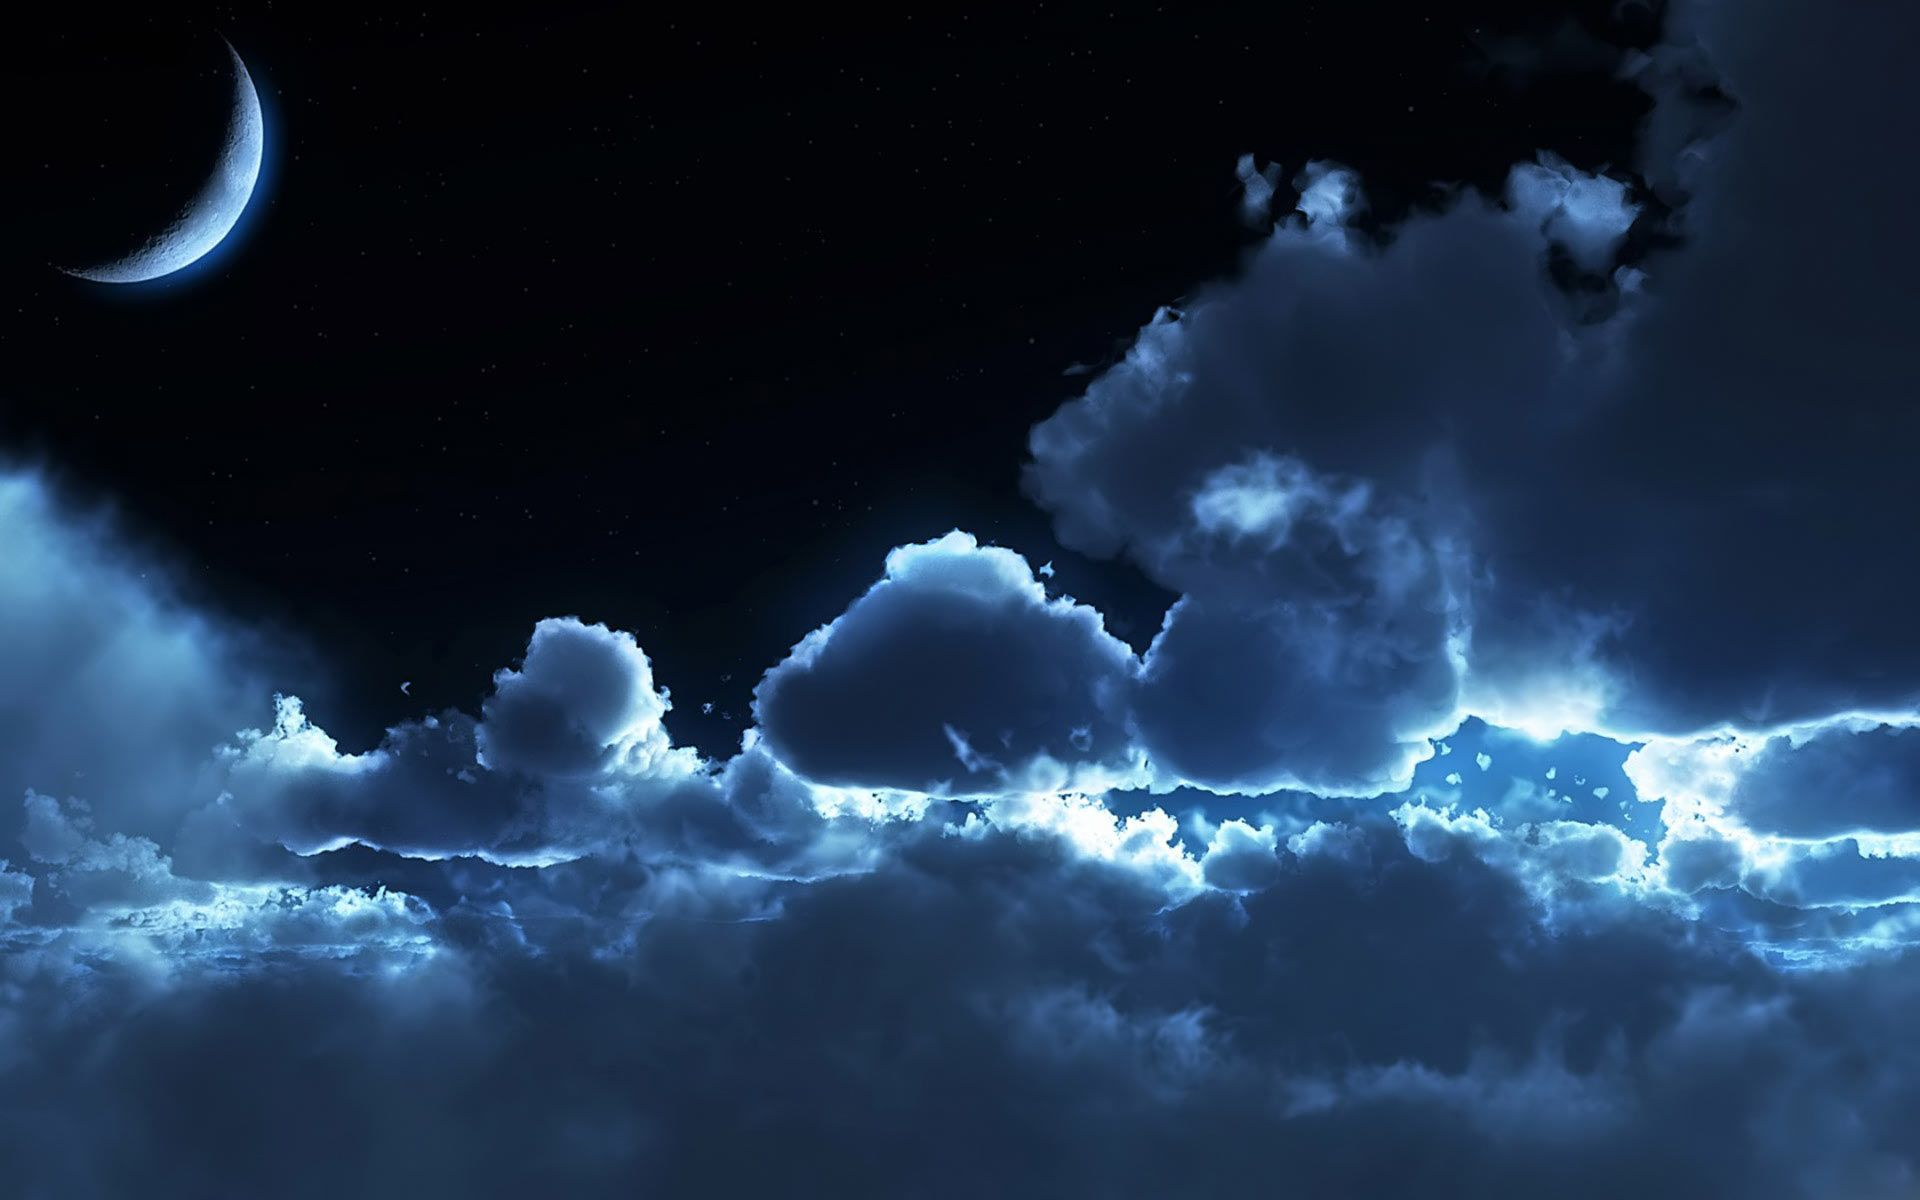 Wallpaper Download 30 Best Windows 7 Wallpapers Hd Collection Fraakz Night Clouds Night Sky Wallpaper Cloudy Nights